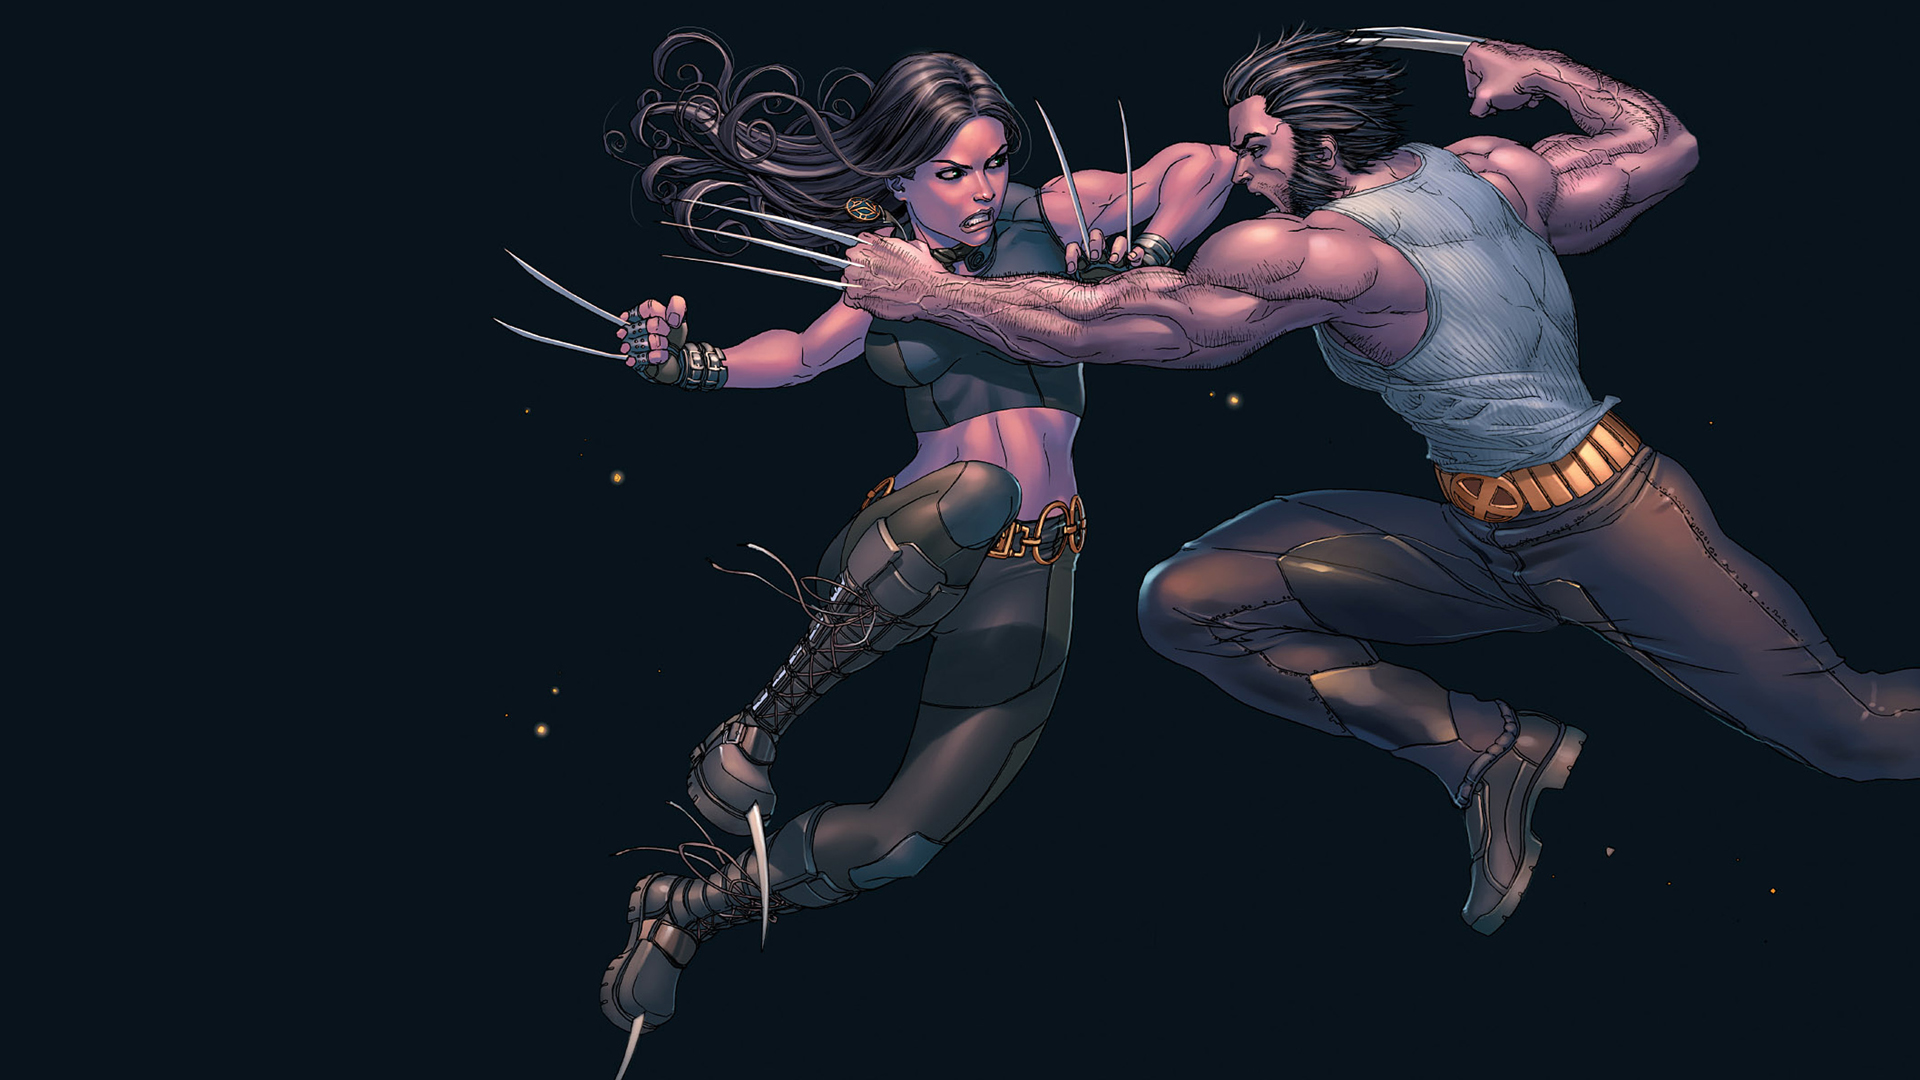 Marvel Superheroines images X23 HD wallpaper and